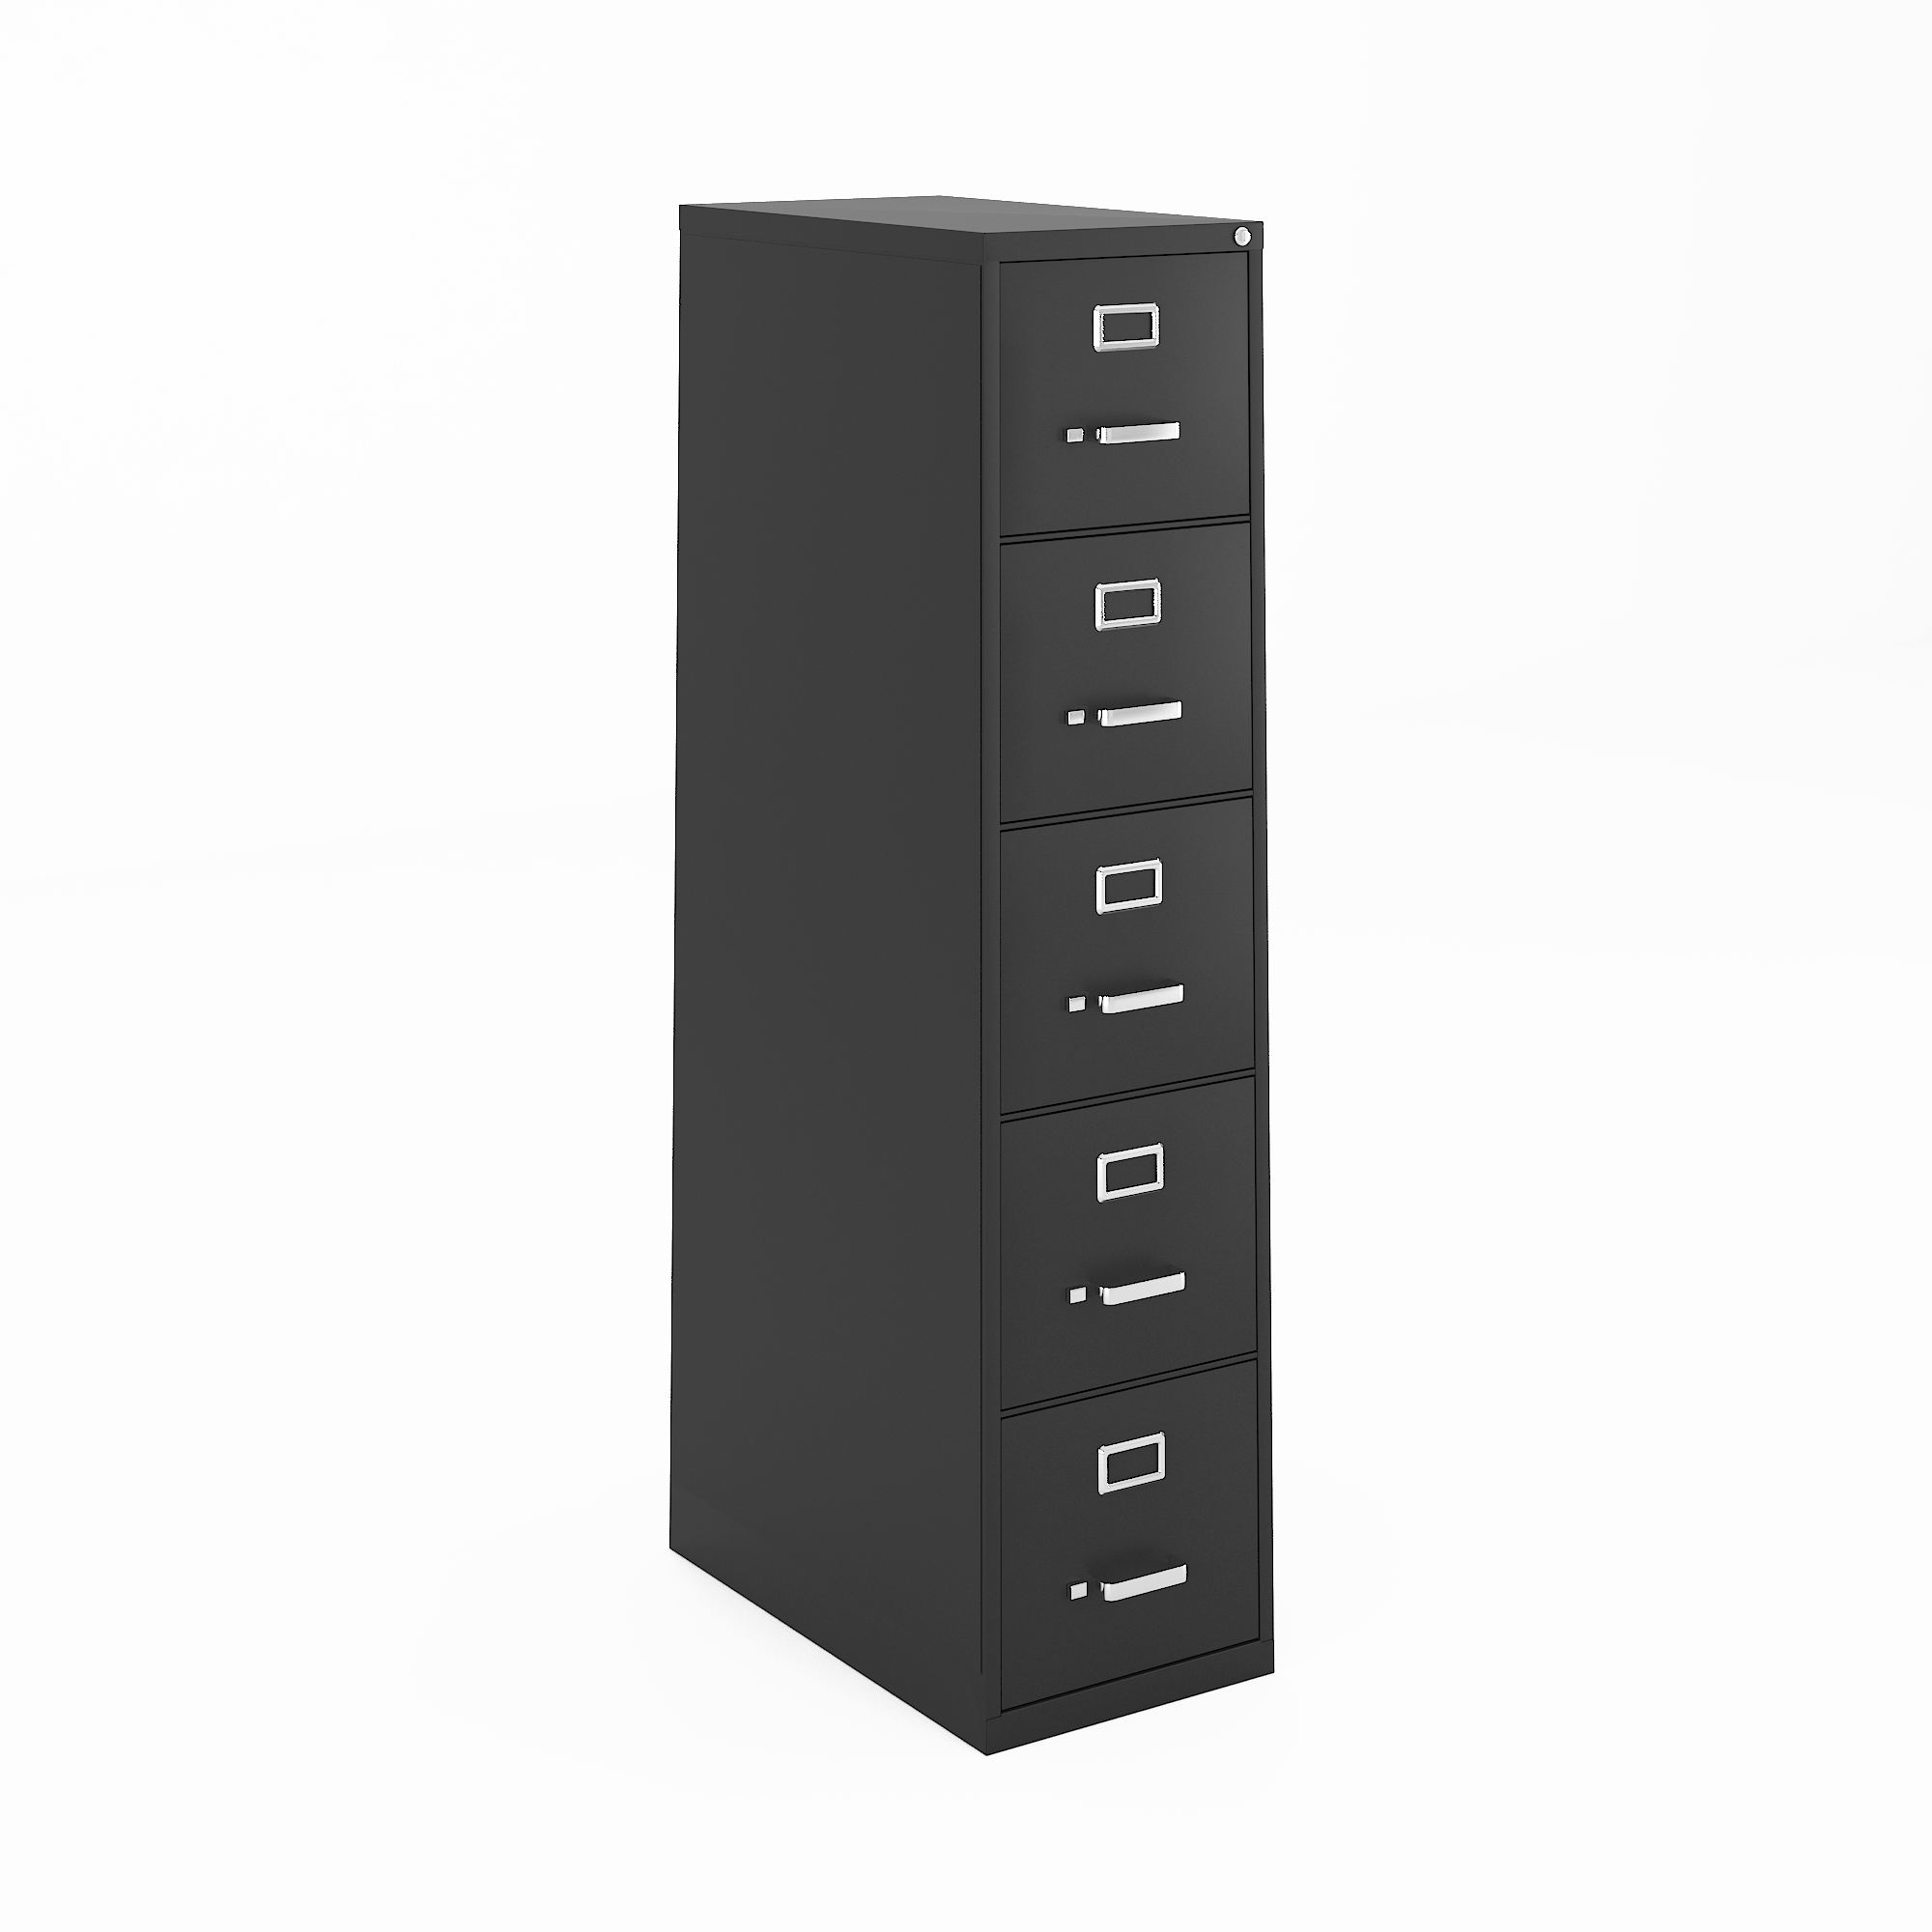 Modern 5 Drawer Steel Vertical File Storage Filing Cabinets For Office